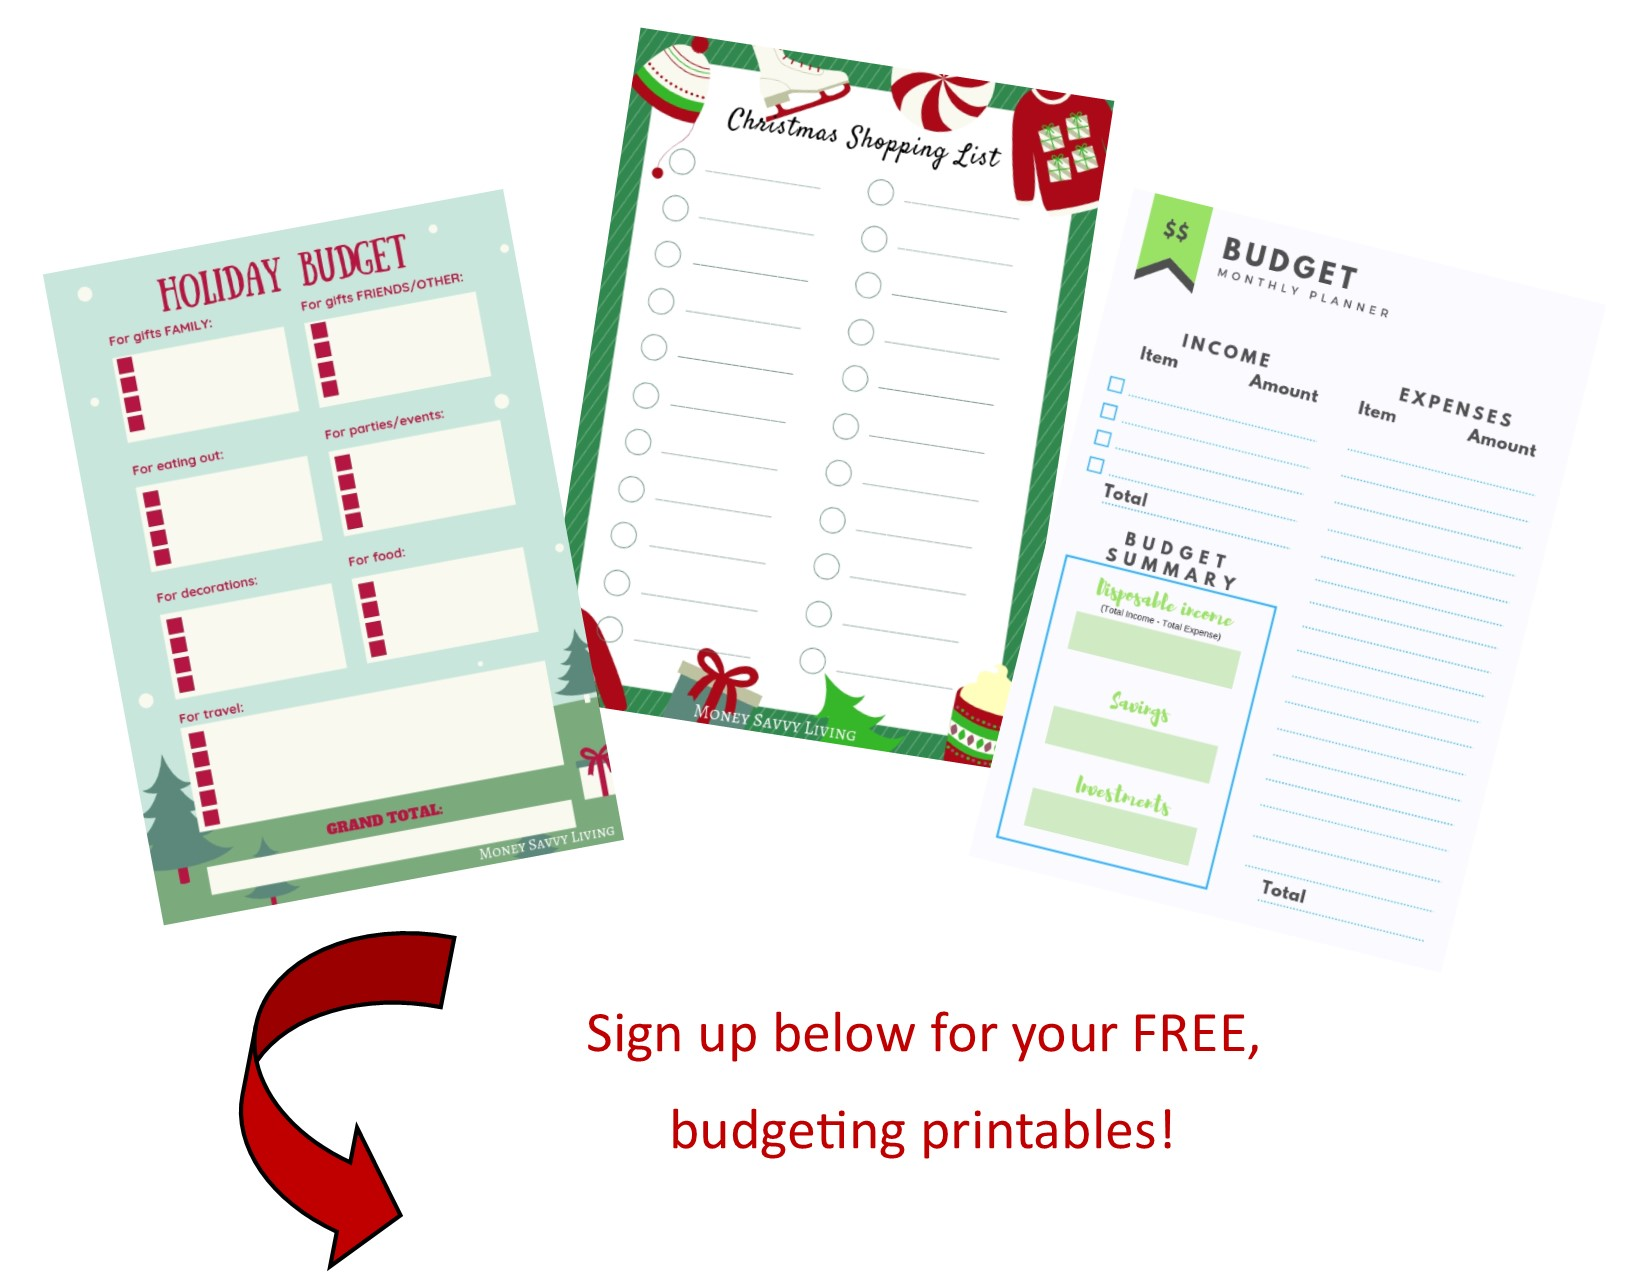 Create a specific budget for Christmas and the holiday season. #holiday #christmas #budget #holidayshopping #christmasshopping #christmasgifts #holidaytravel #travel #christmasparty #printable #freeprintable